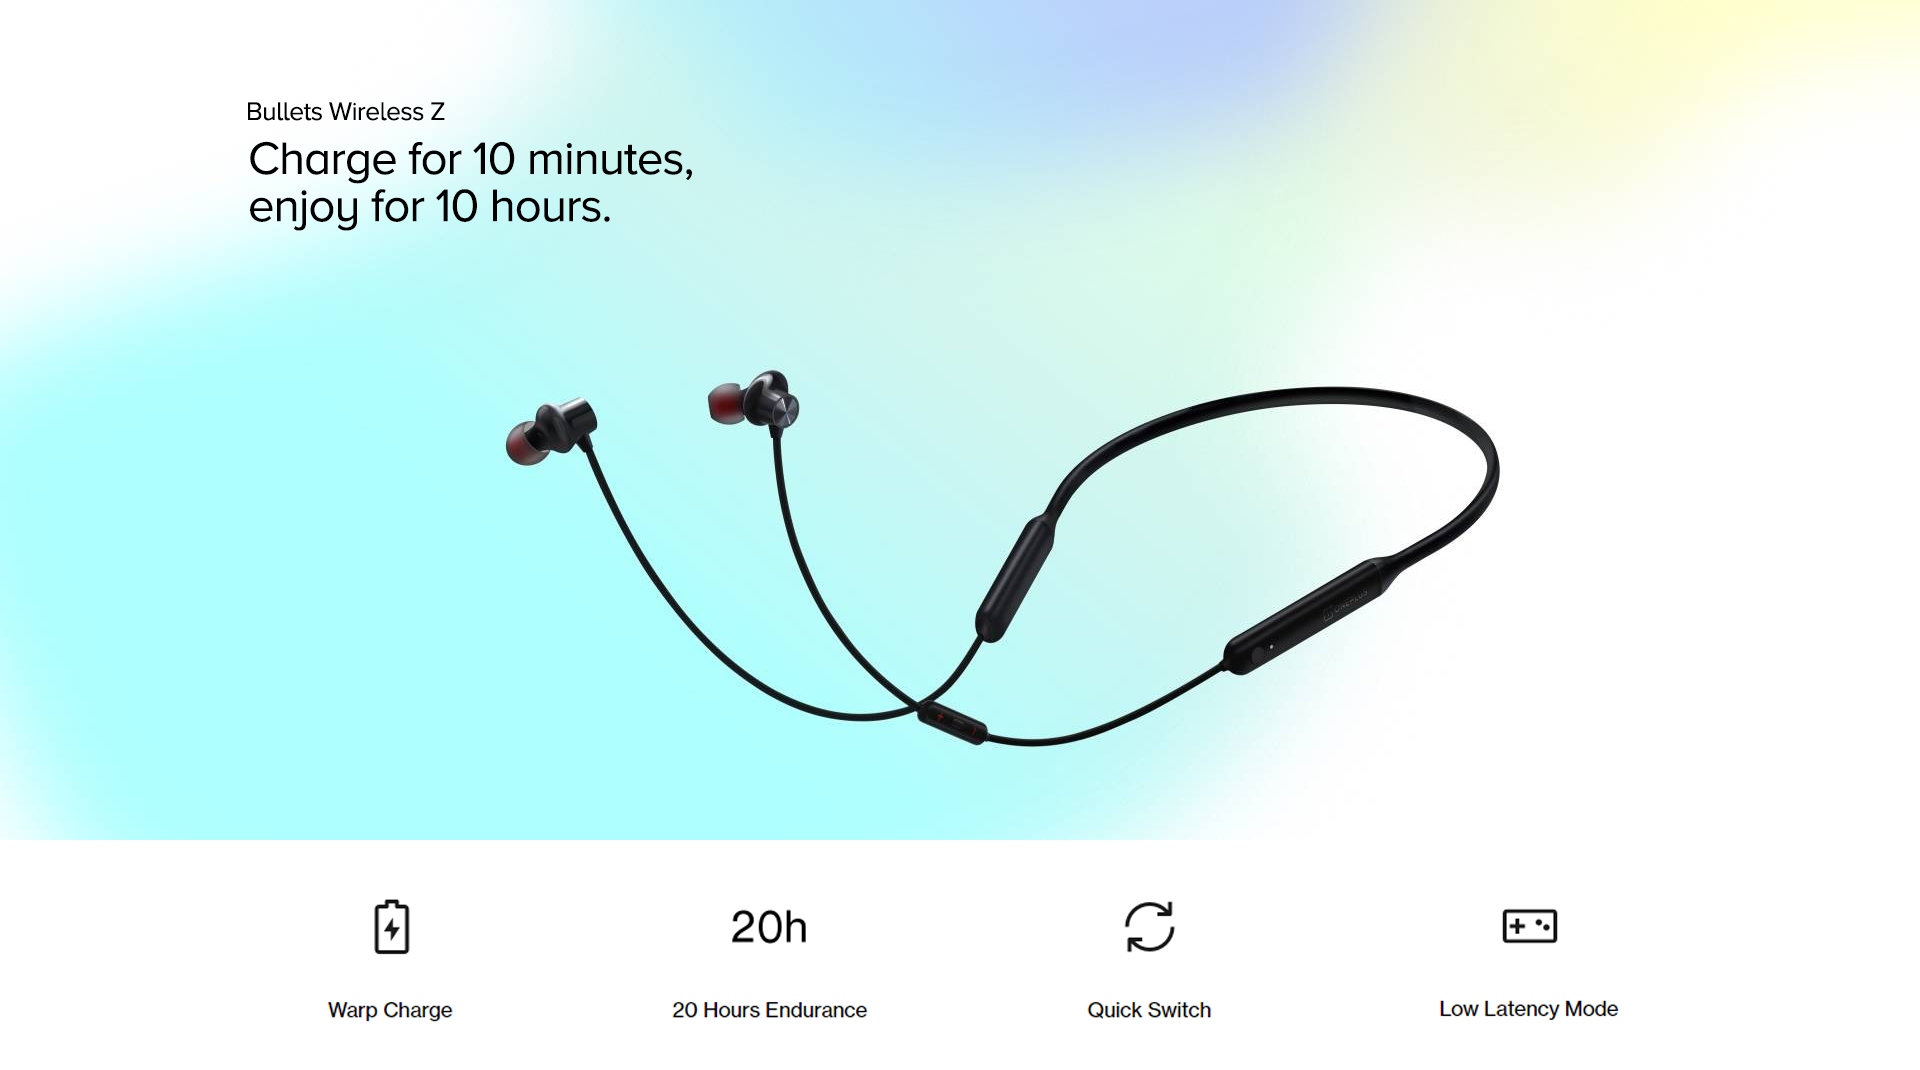 Charge for 10 minutes, enjoy for 10 hours.